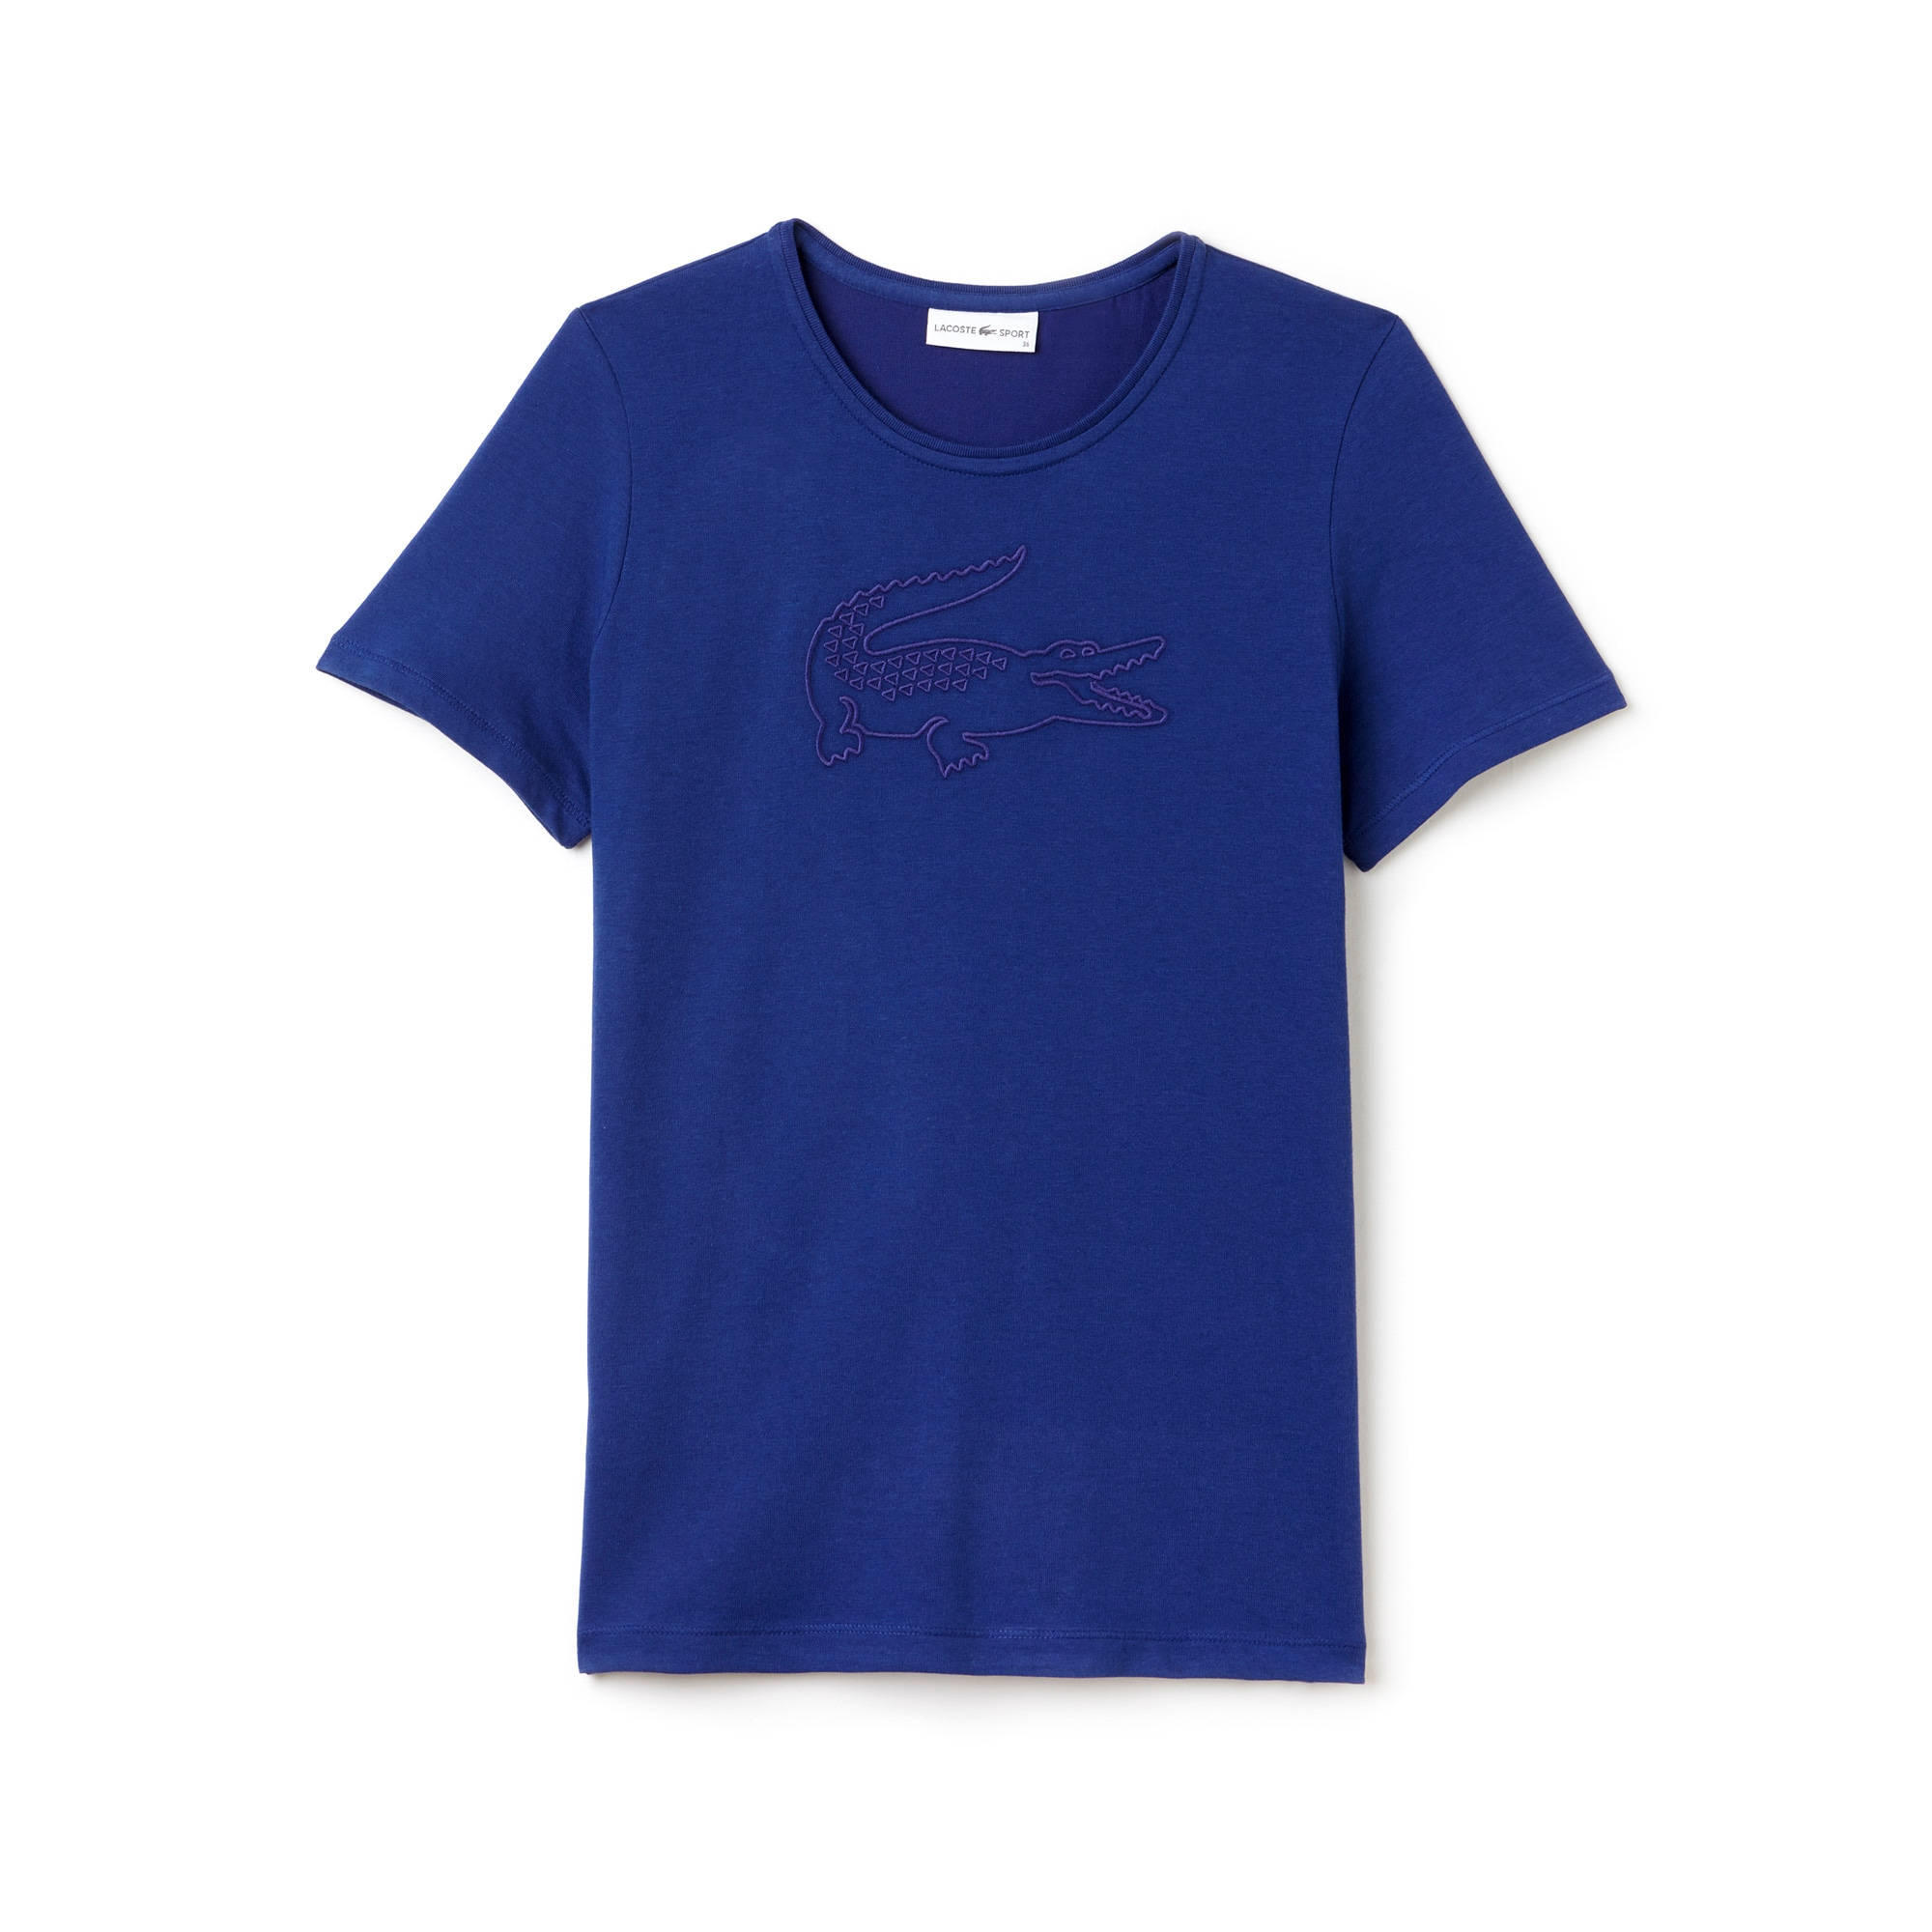 Women's Lacoste SPORT Tennis Croc Embroidery Tech Jersey T-shirt